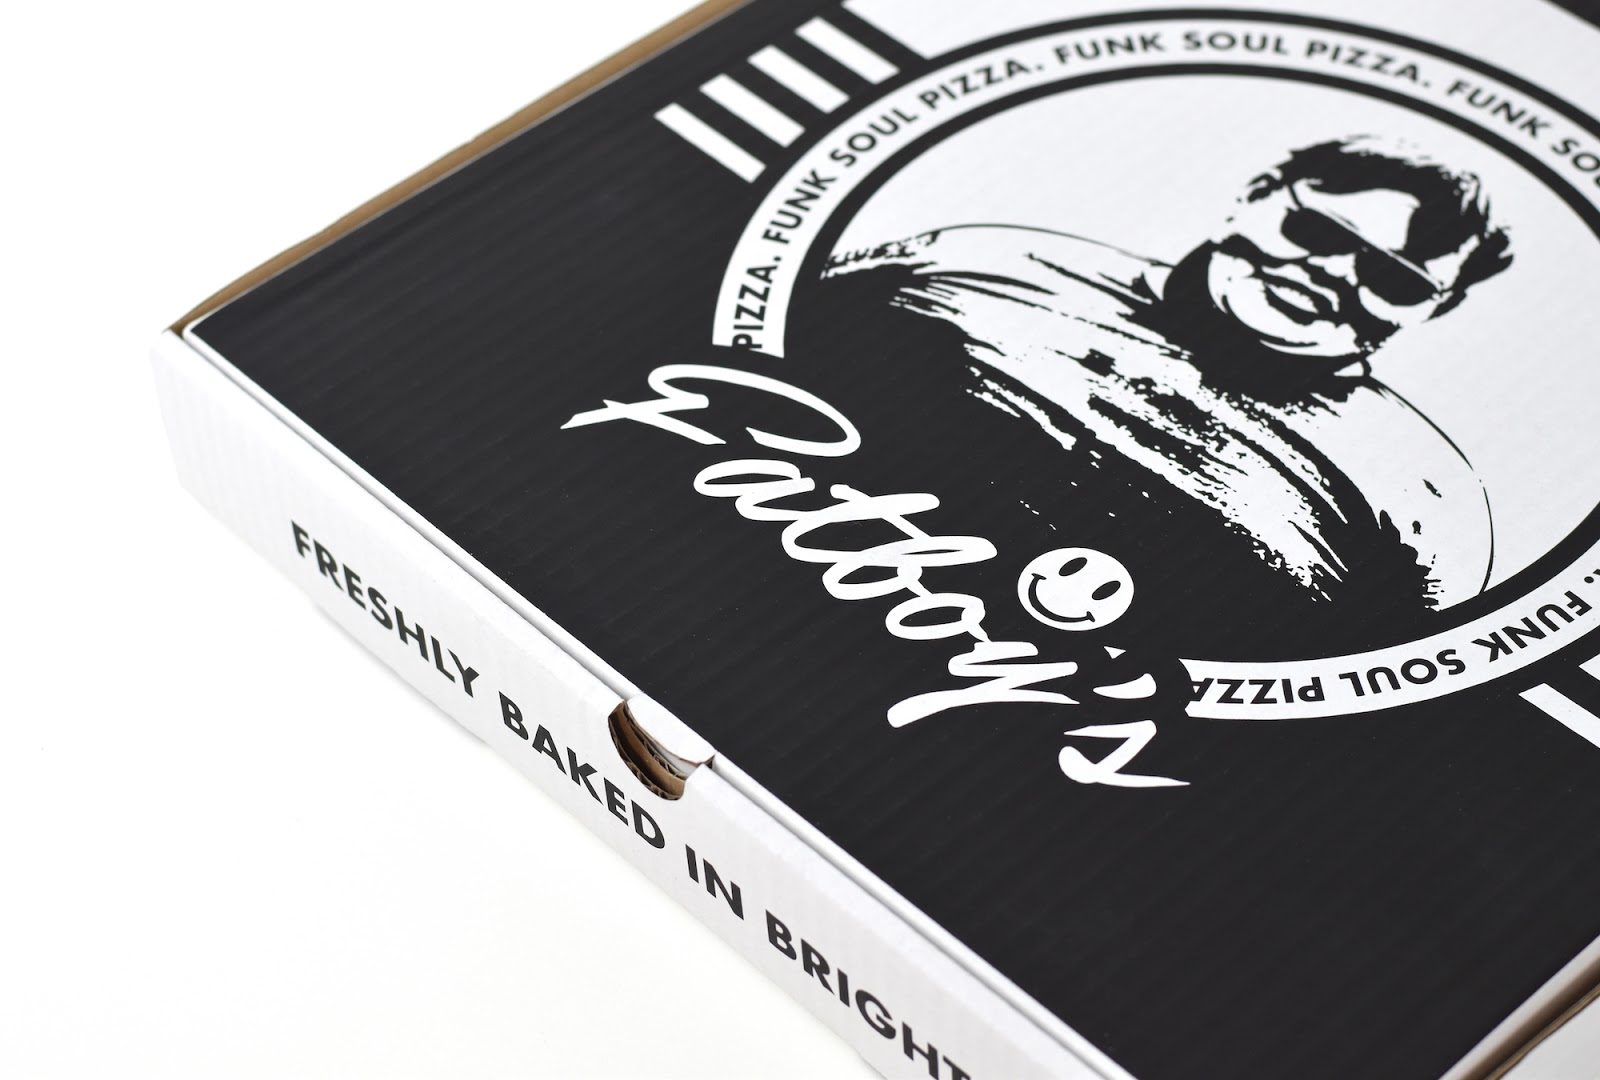 fatboy-slim_pizza-box_packshot_4